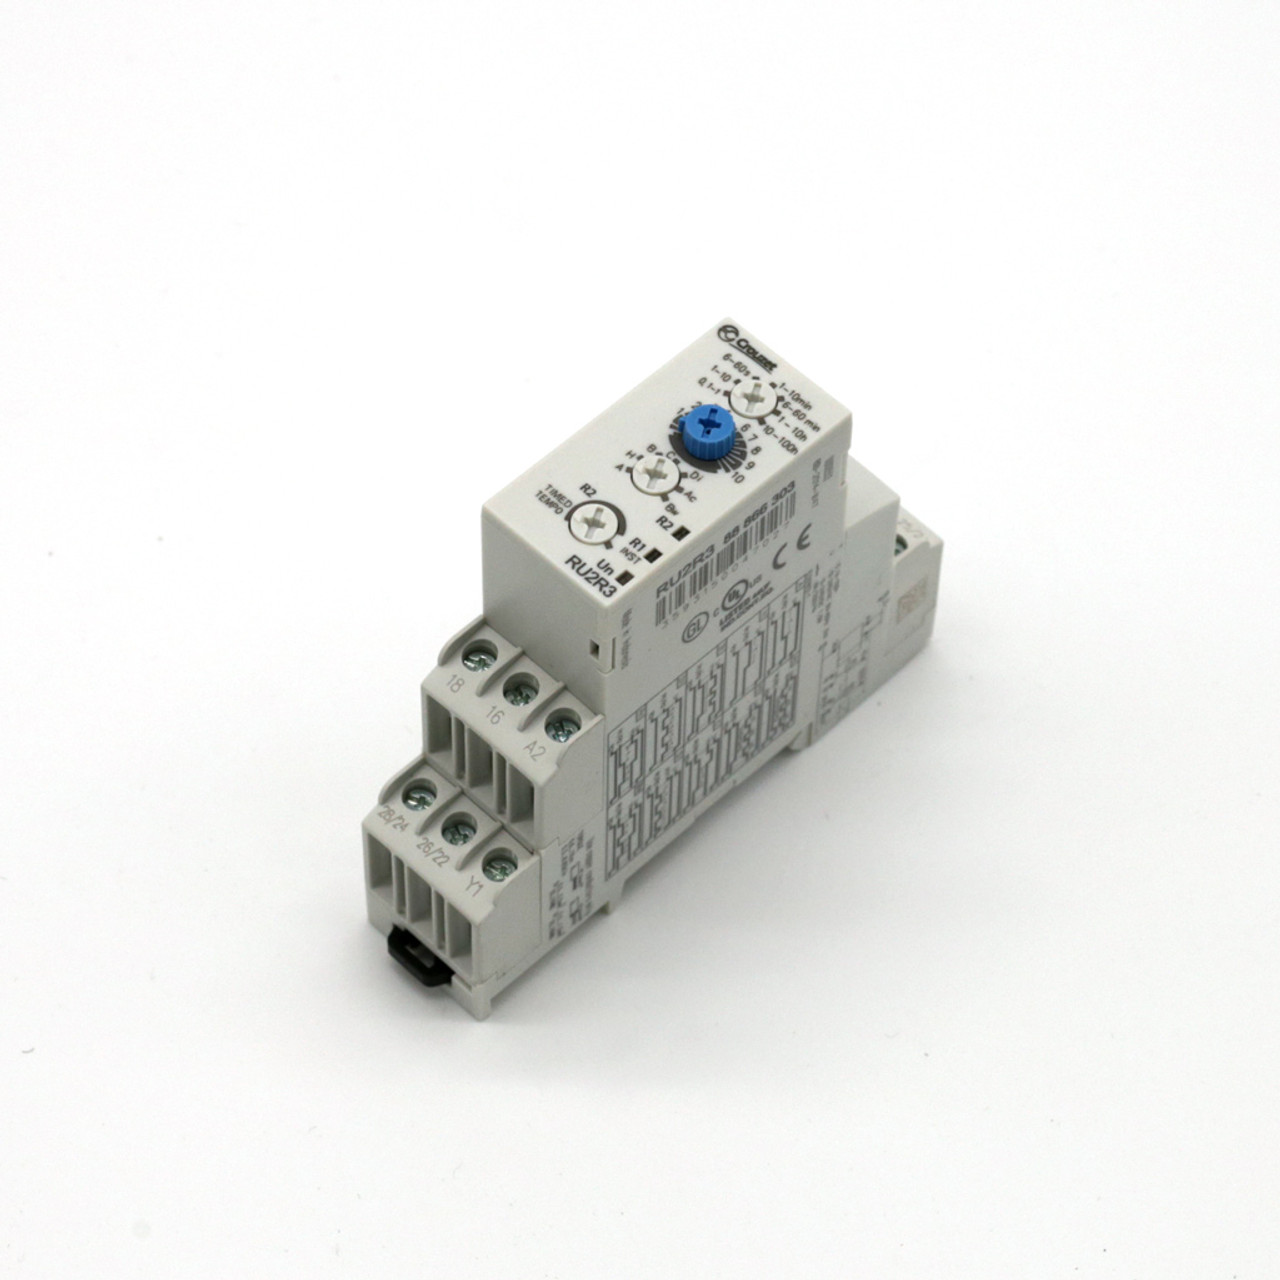 Crouzet RU2R3 Intelligent Timing Relay